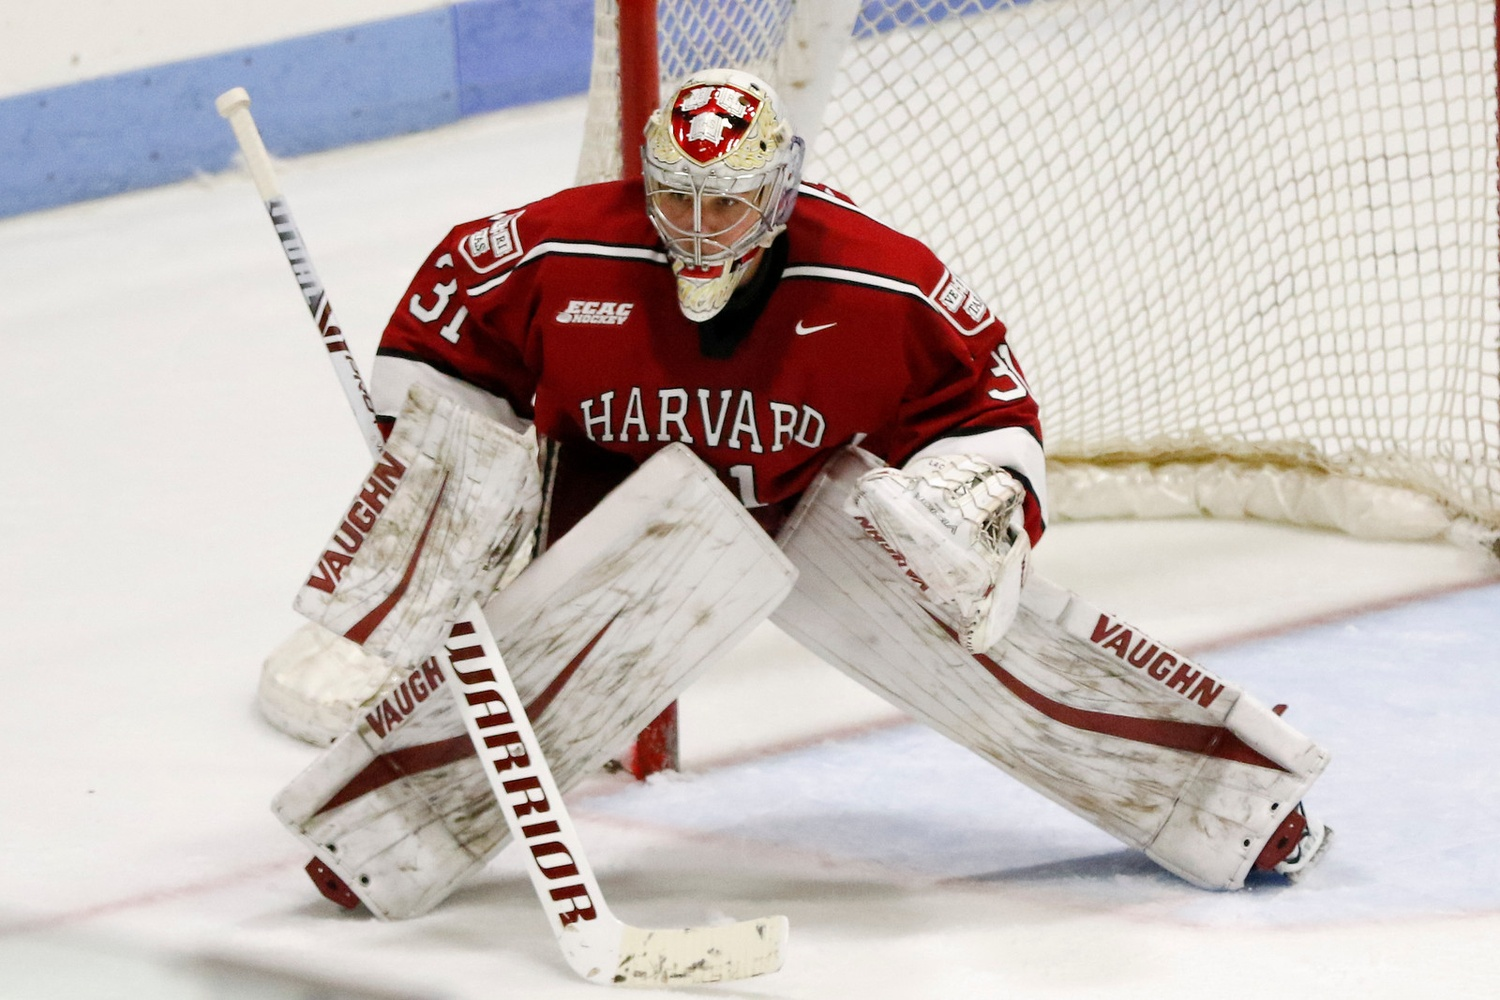 Since a stellar performance at Madison Square Garden back in late November, senior goaltender Michael Lackey has found a new level of confidence and sturdiness between the pipes.